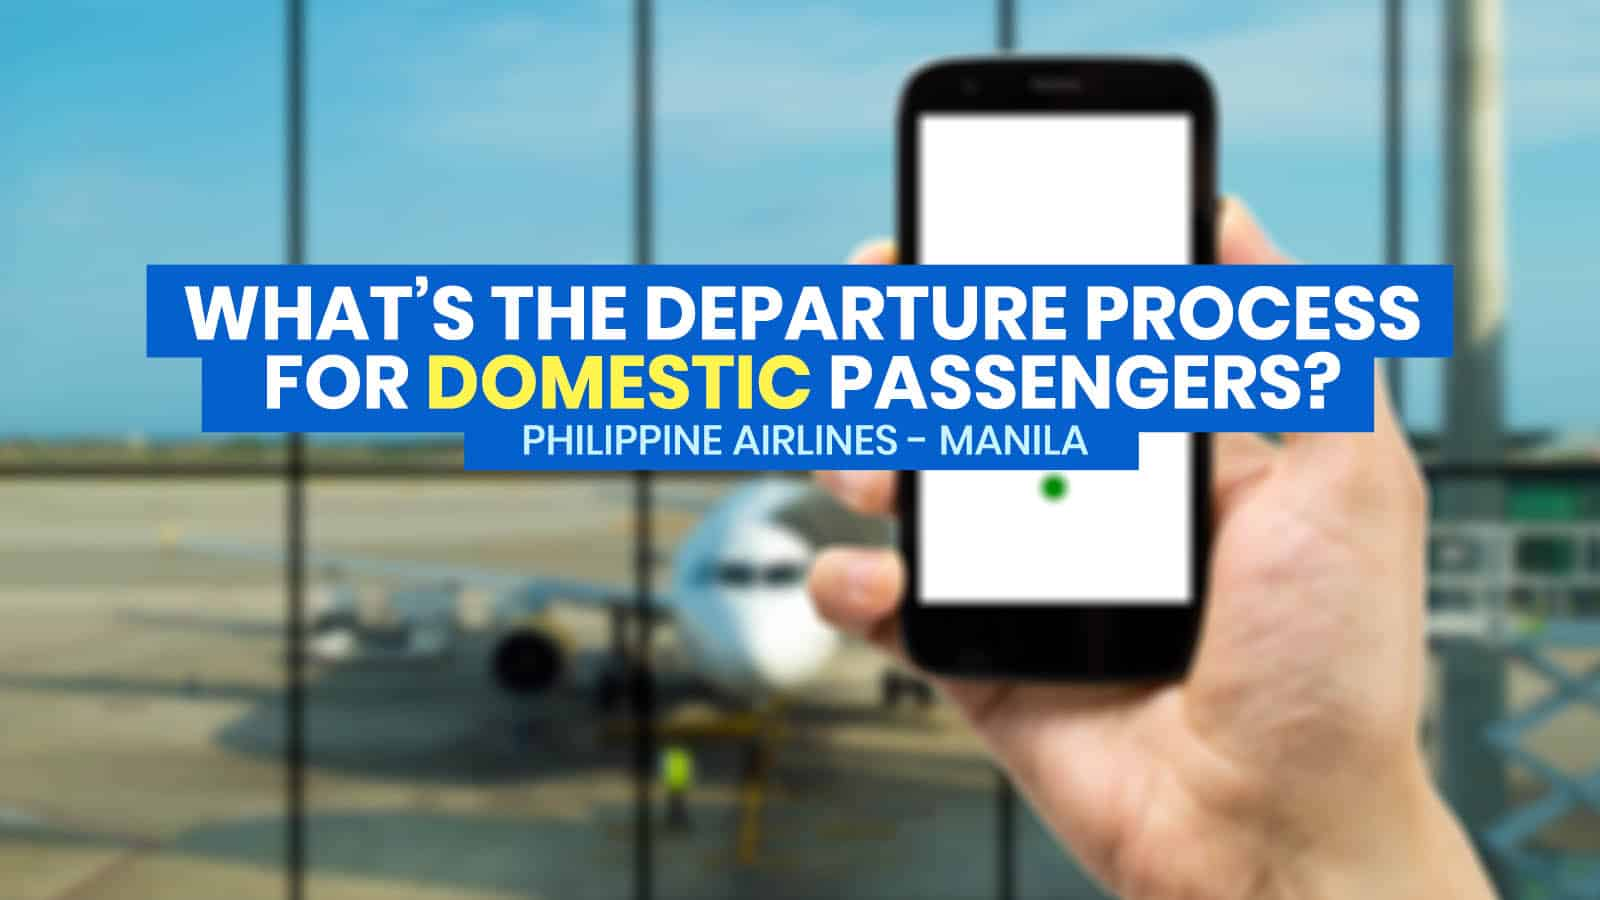 NEW DEPARTURE PROCESS for Domestic Flights from Manila: Step-by-Step Guide by Philippine Airlines